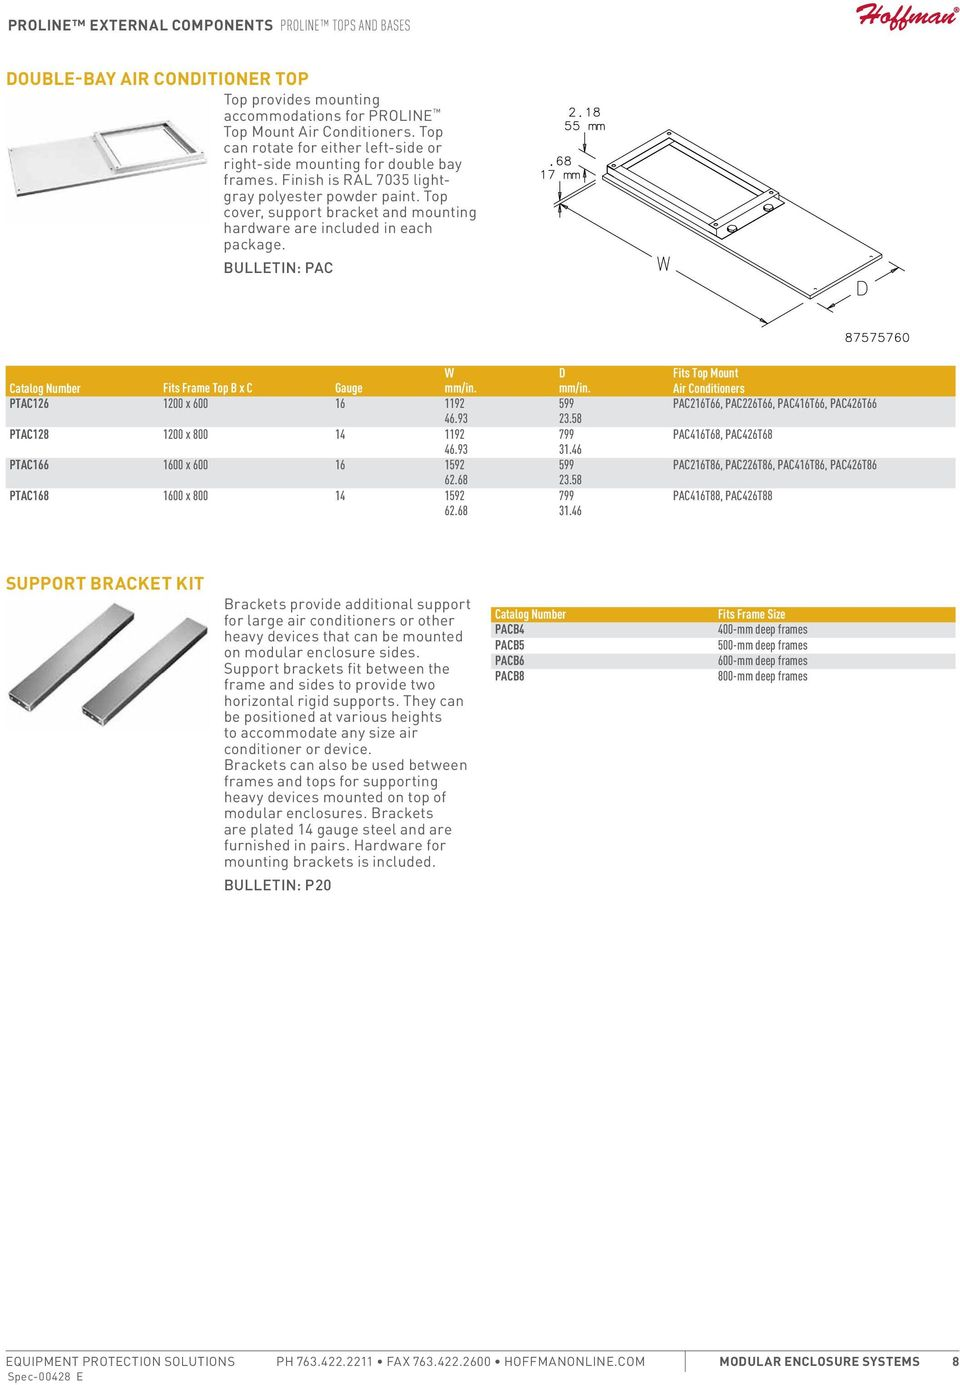 Bulletin: PAC Catalog Number Fits Frame Top B x C Gauge W PTAC126 1200 x 600 16 1192 46.93 PTAC128 1200 x 800 14 1192 46.93 PTAC166 1600 x 600 16 1592 62.68 PTAC168 1600 x 800 14 1592 62.68 D 23.